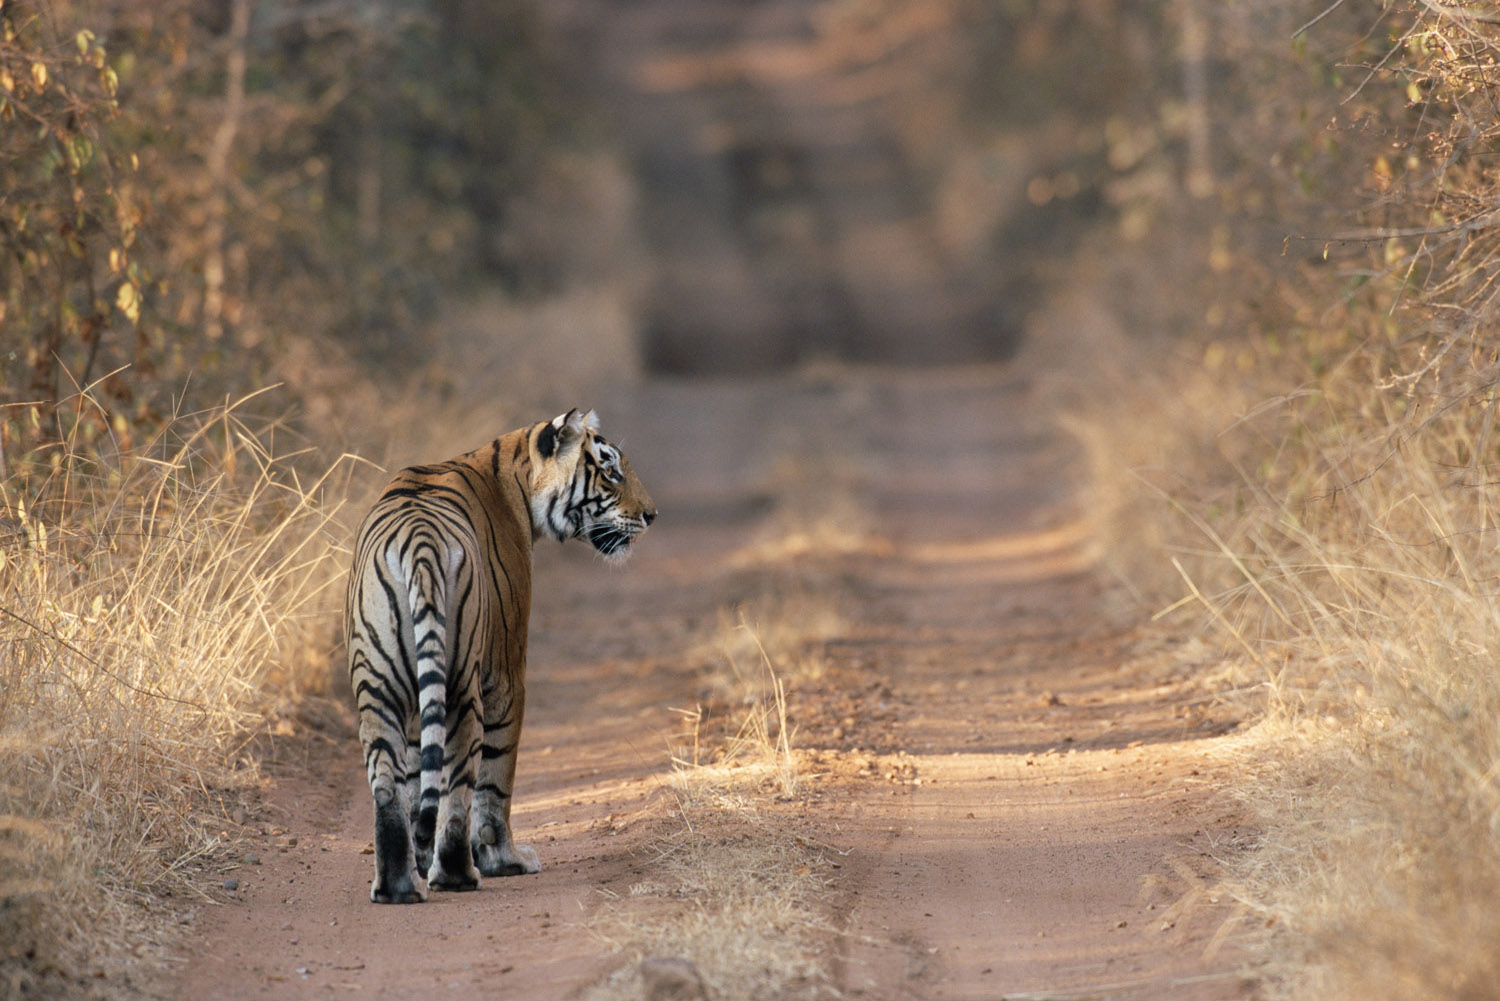 Tigress on forest track, Ranthambhore National Park, Rajasthan, India